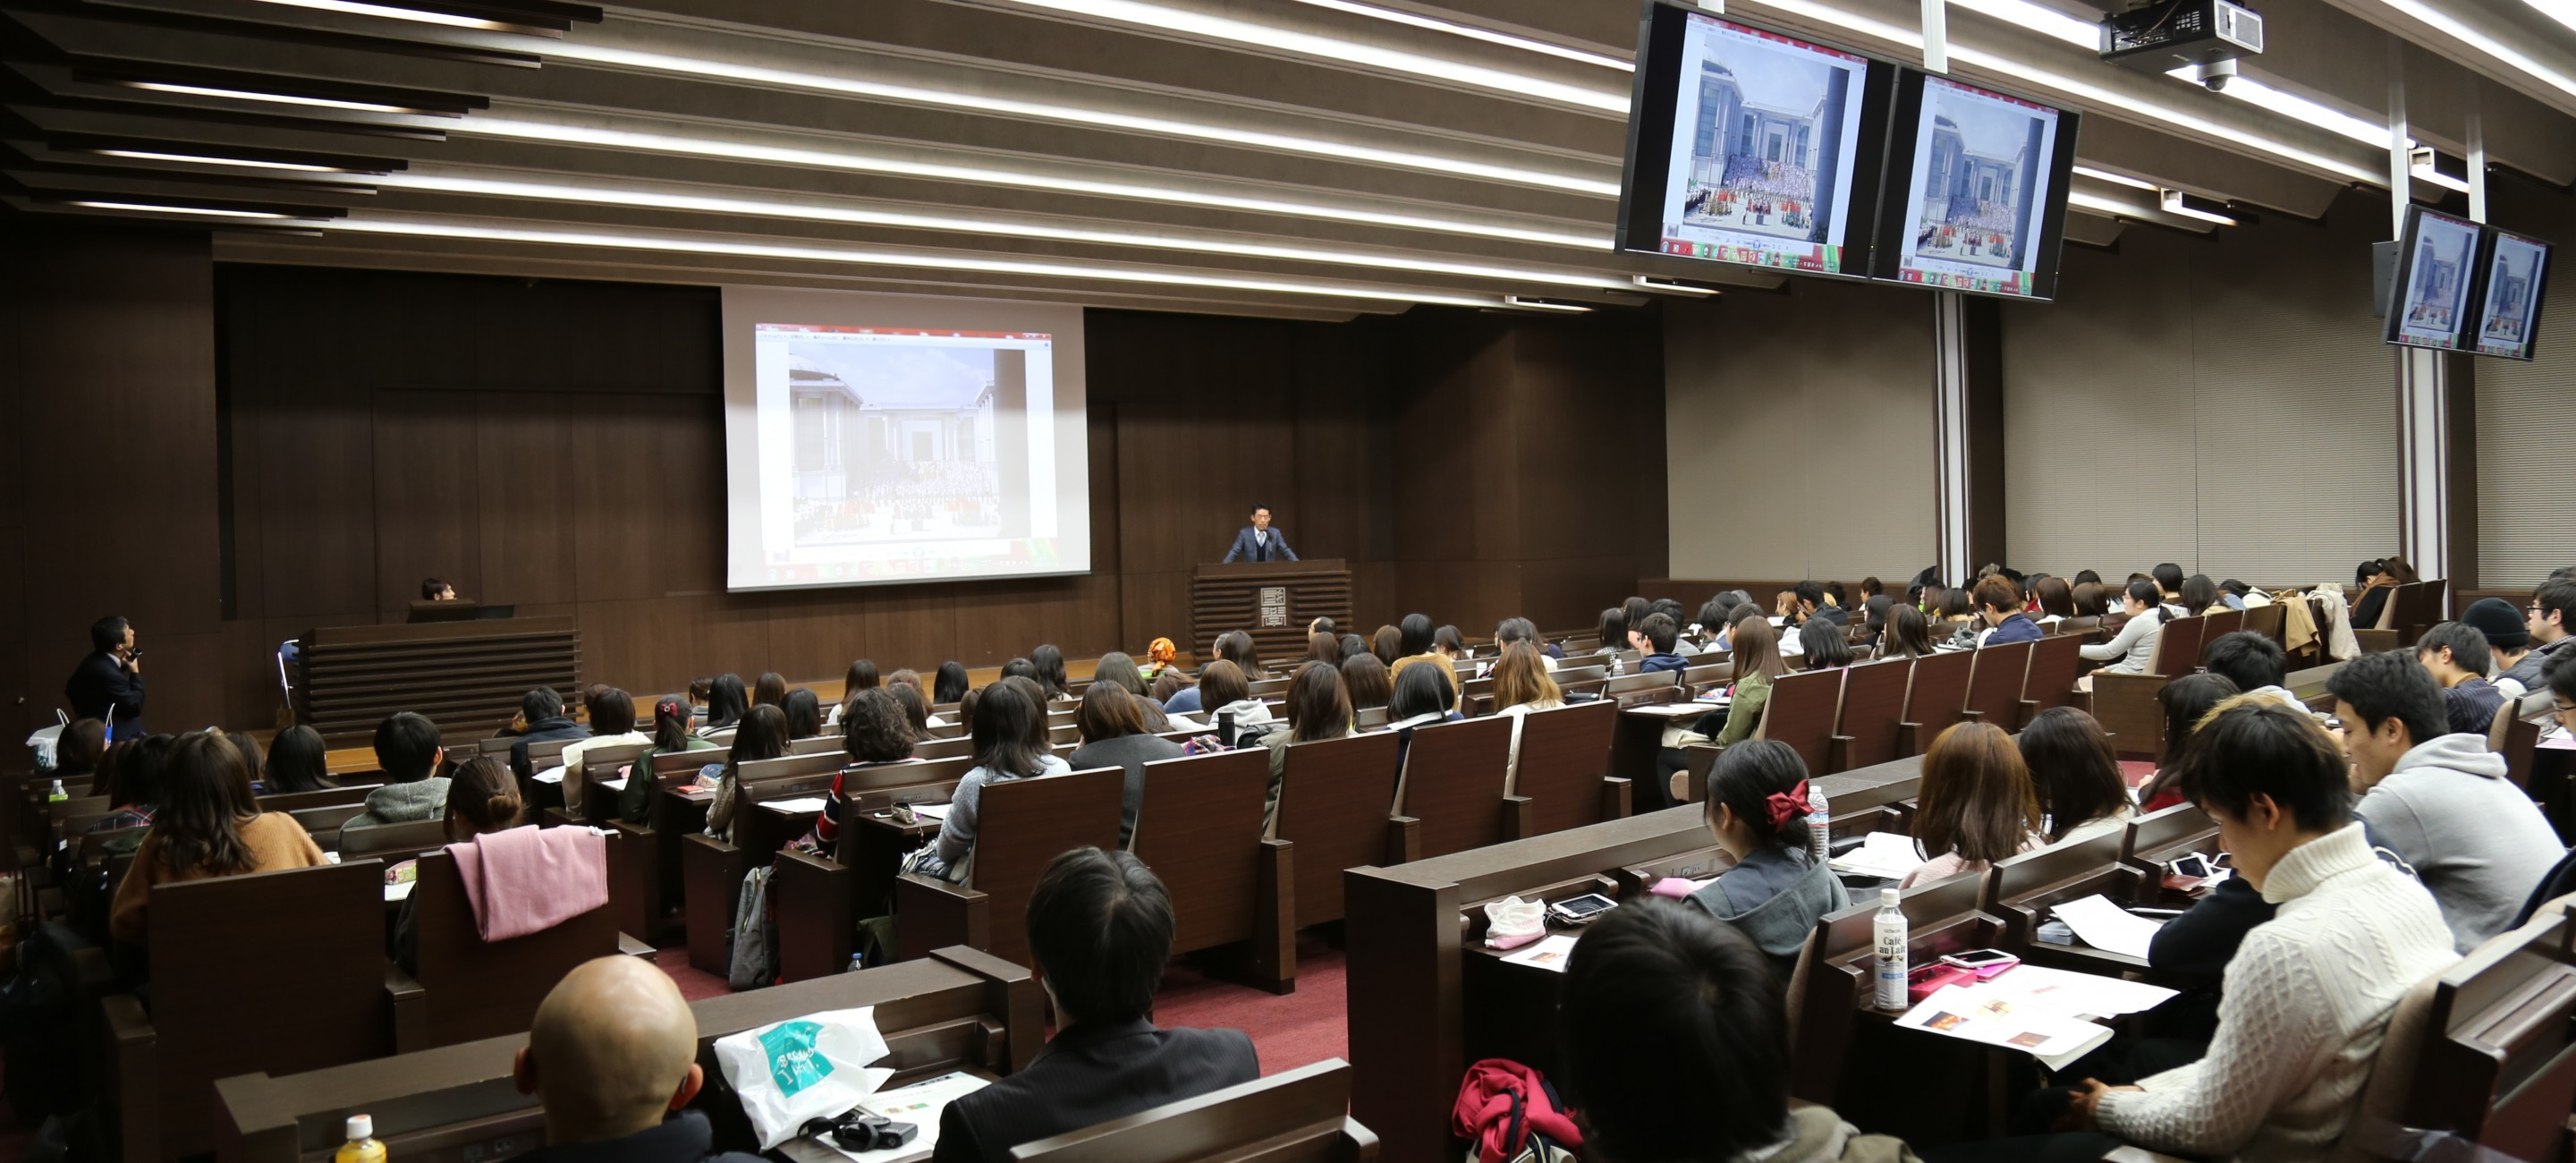 PRESENTATION OF TURKMENISTAN AND ASIADA-2017 WAS HELD AT THE KOKUGAKUIN UNIVERSITY OF TOKYO